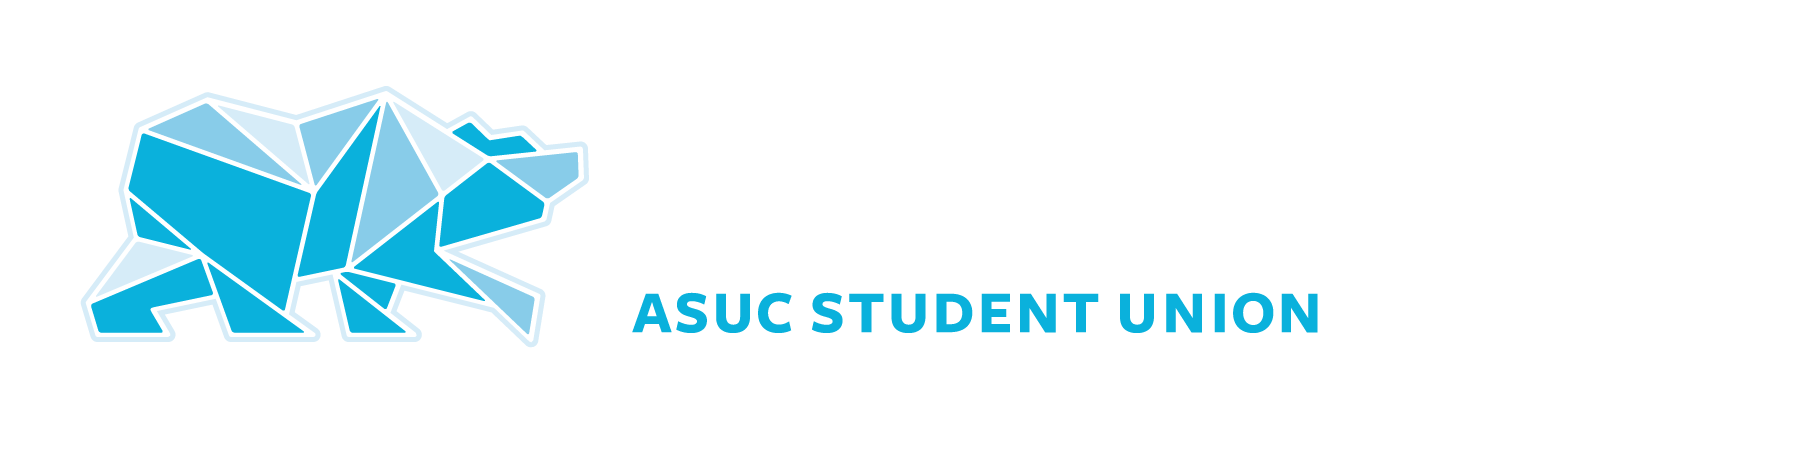 Download event services logo Horizontal in color and white